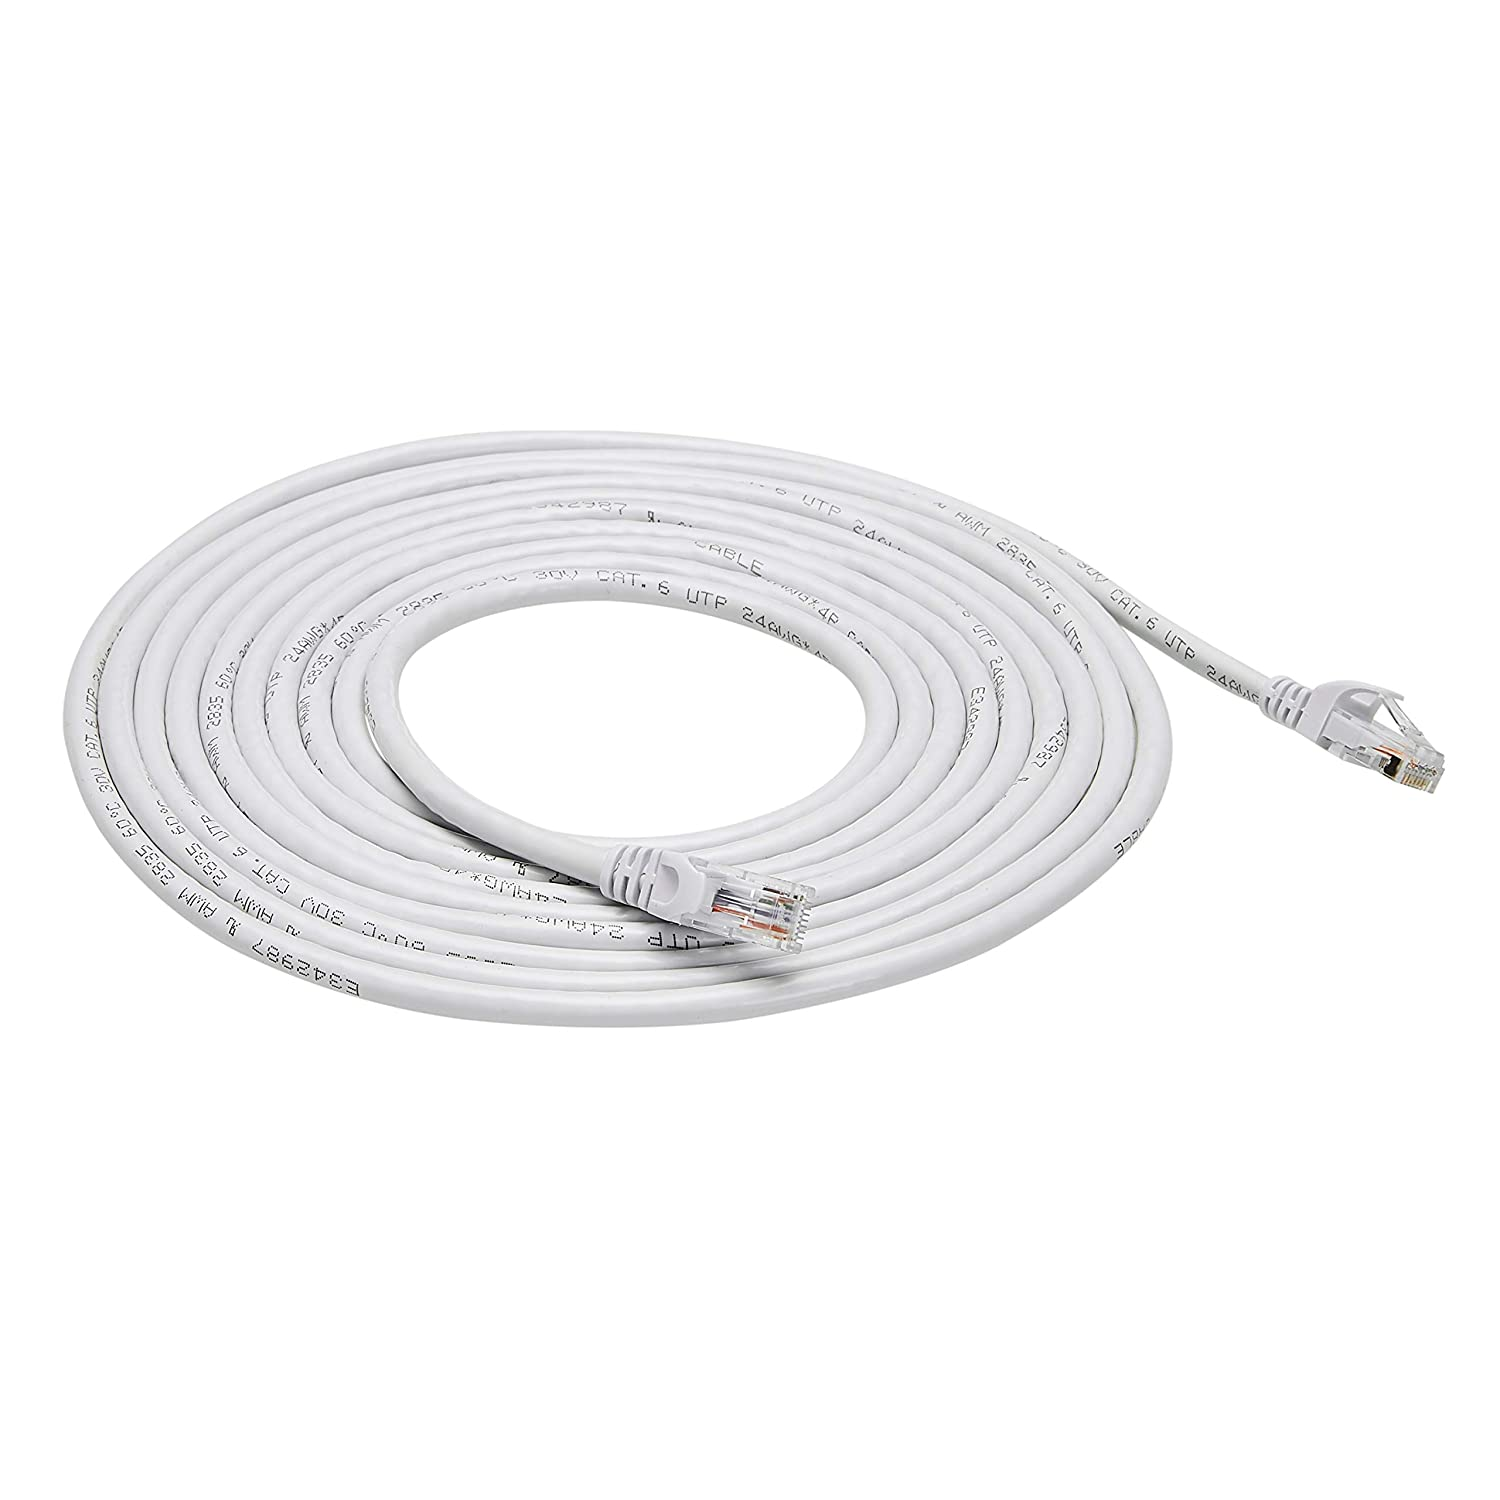 AmazonBasics Snagless RJ45 Cat-6 Ethernet Patch Internet Cable - Pack of 5 - 15-Foot, White